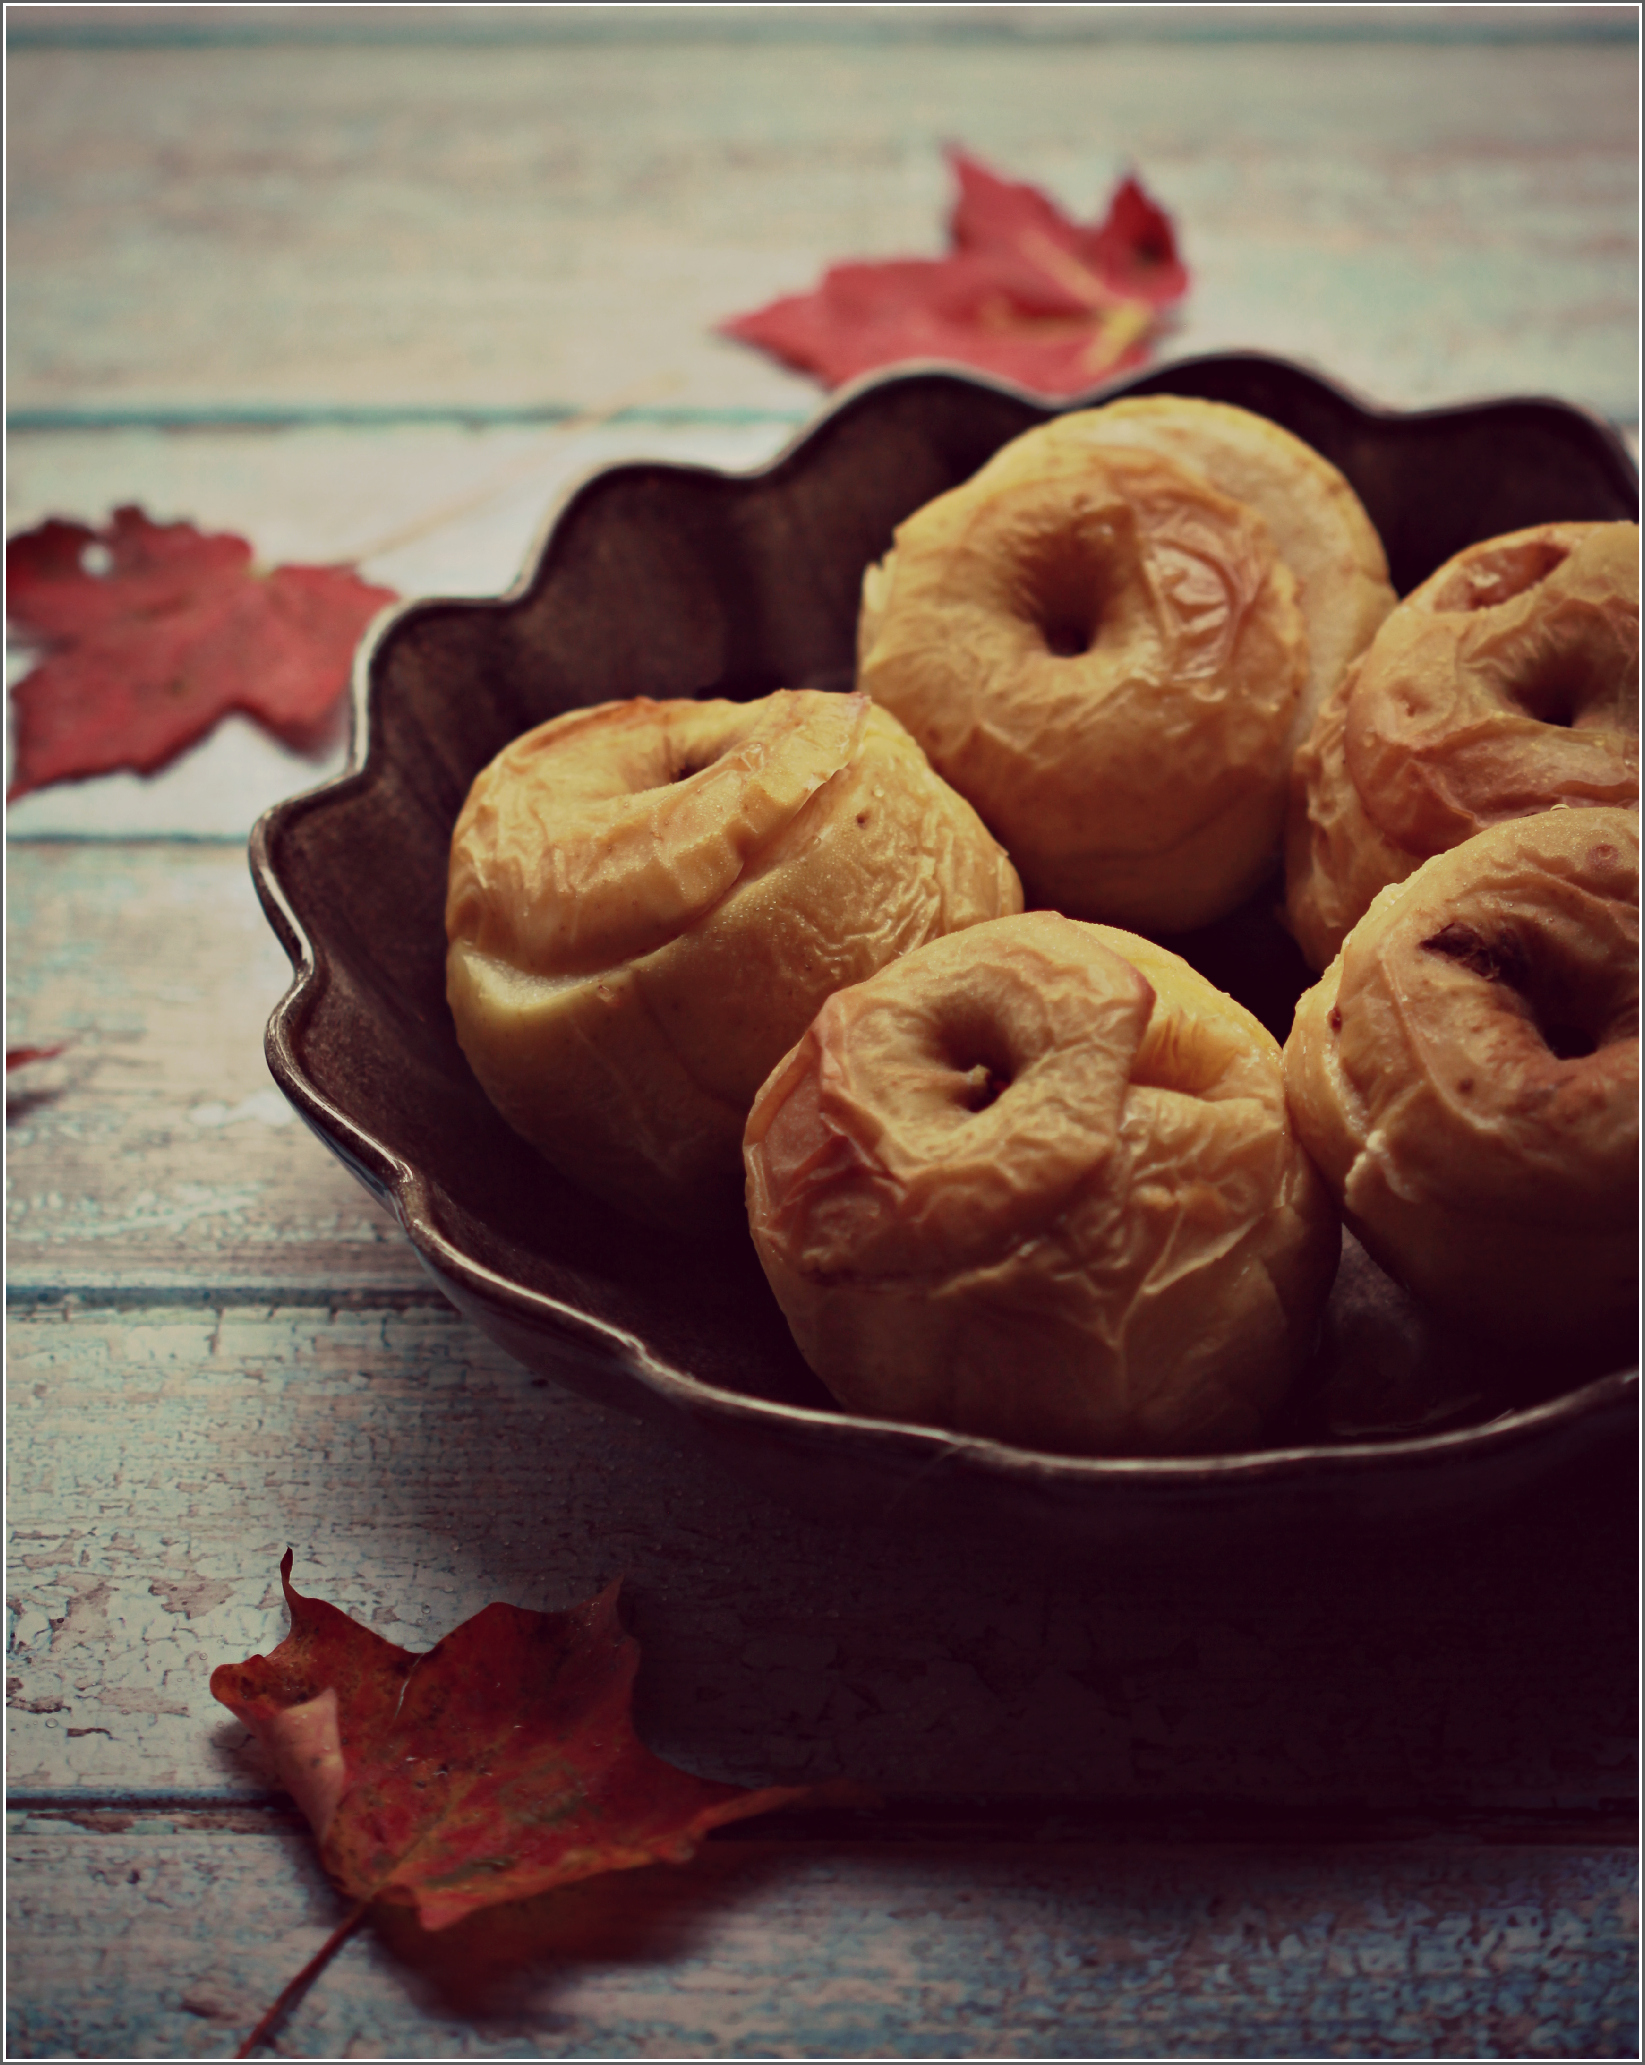 Honey and Ginger Baked Apples on Black Plate by Dena T BrayⒸ